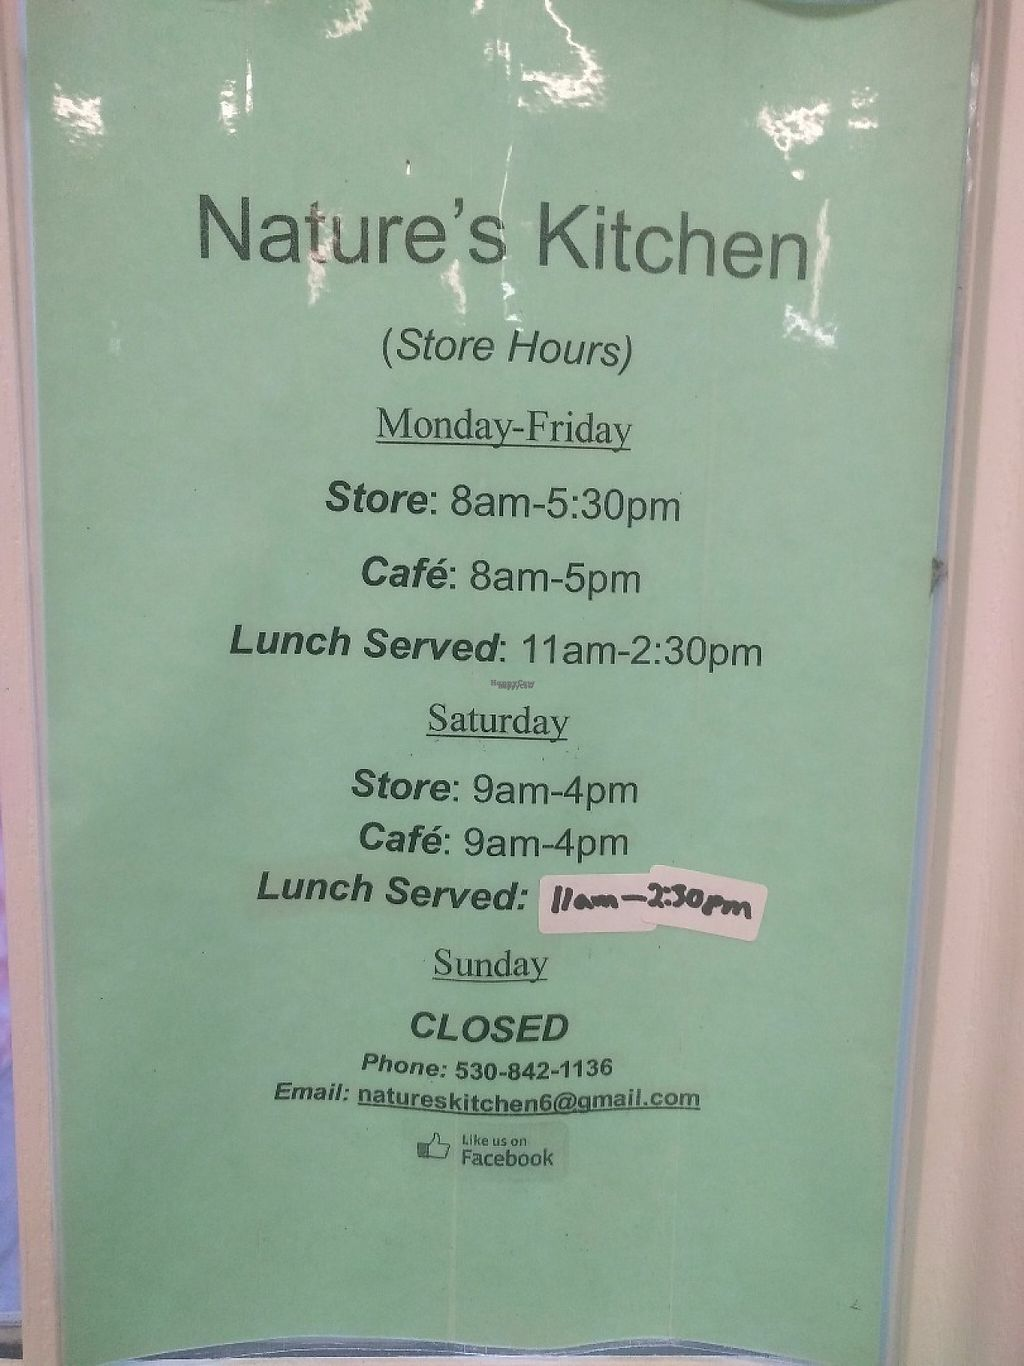 """Photo of Nature's Kitchen and Market  by <a href=""""/members/profile/arcataroger"""">arcataroger</a> <br/>Gift Shop & Cafe Hours <br/> March 31, 2017  - <a href='/contact/abuse/image/1598/242875'>Report</a>"""